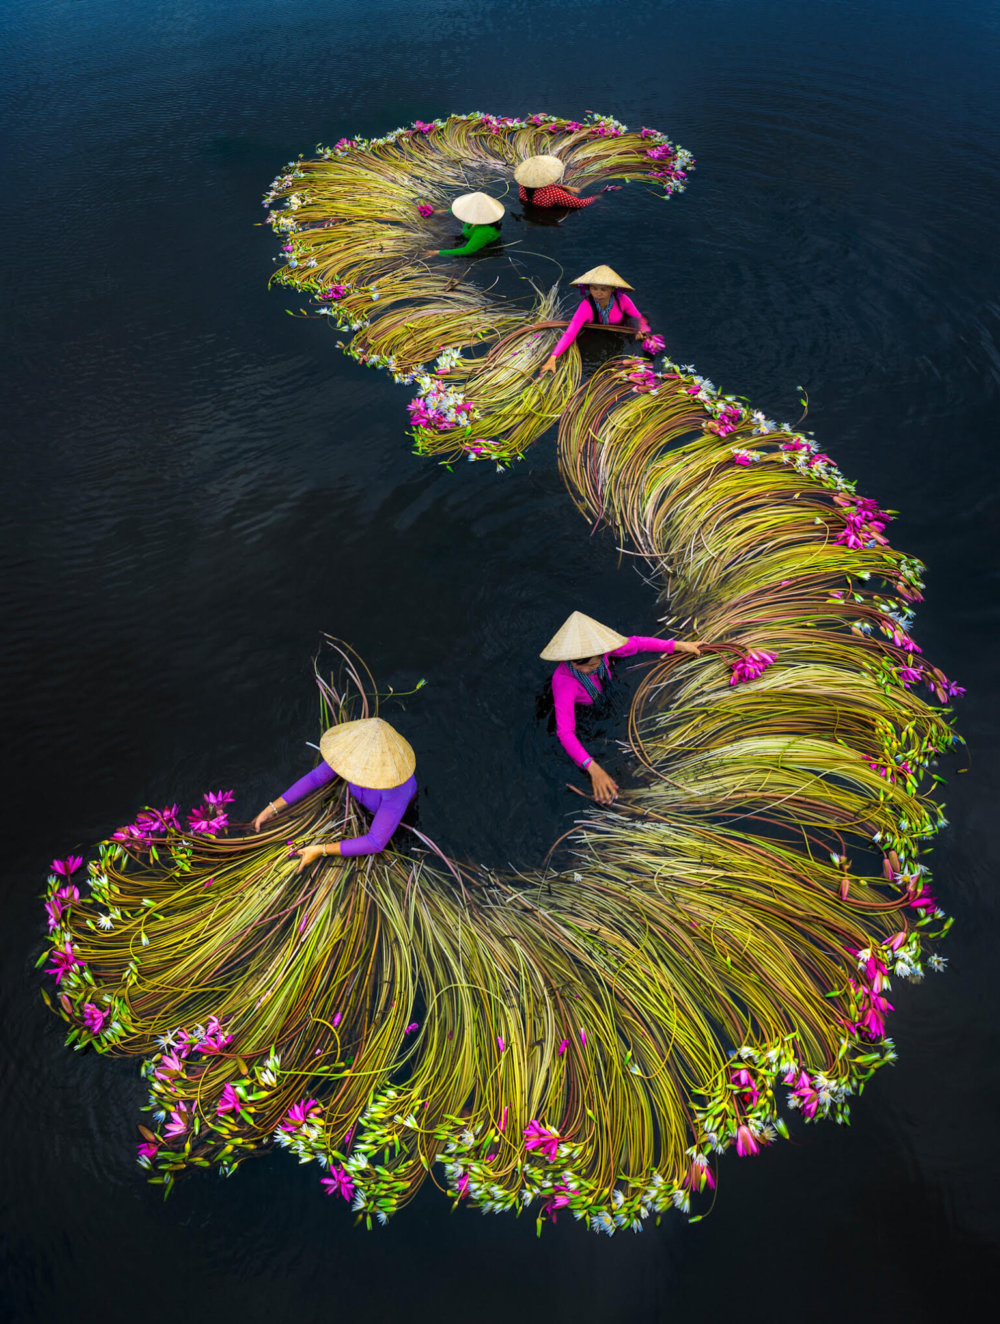 Beautiful Shots Of The Water Lily Harvest In Vietnam Captured By The Lens Of Pham Huy Trung 2